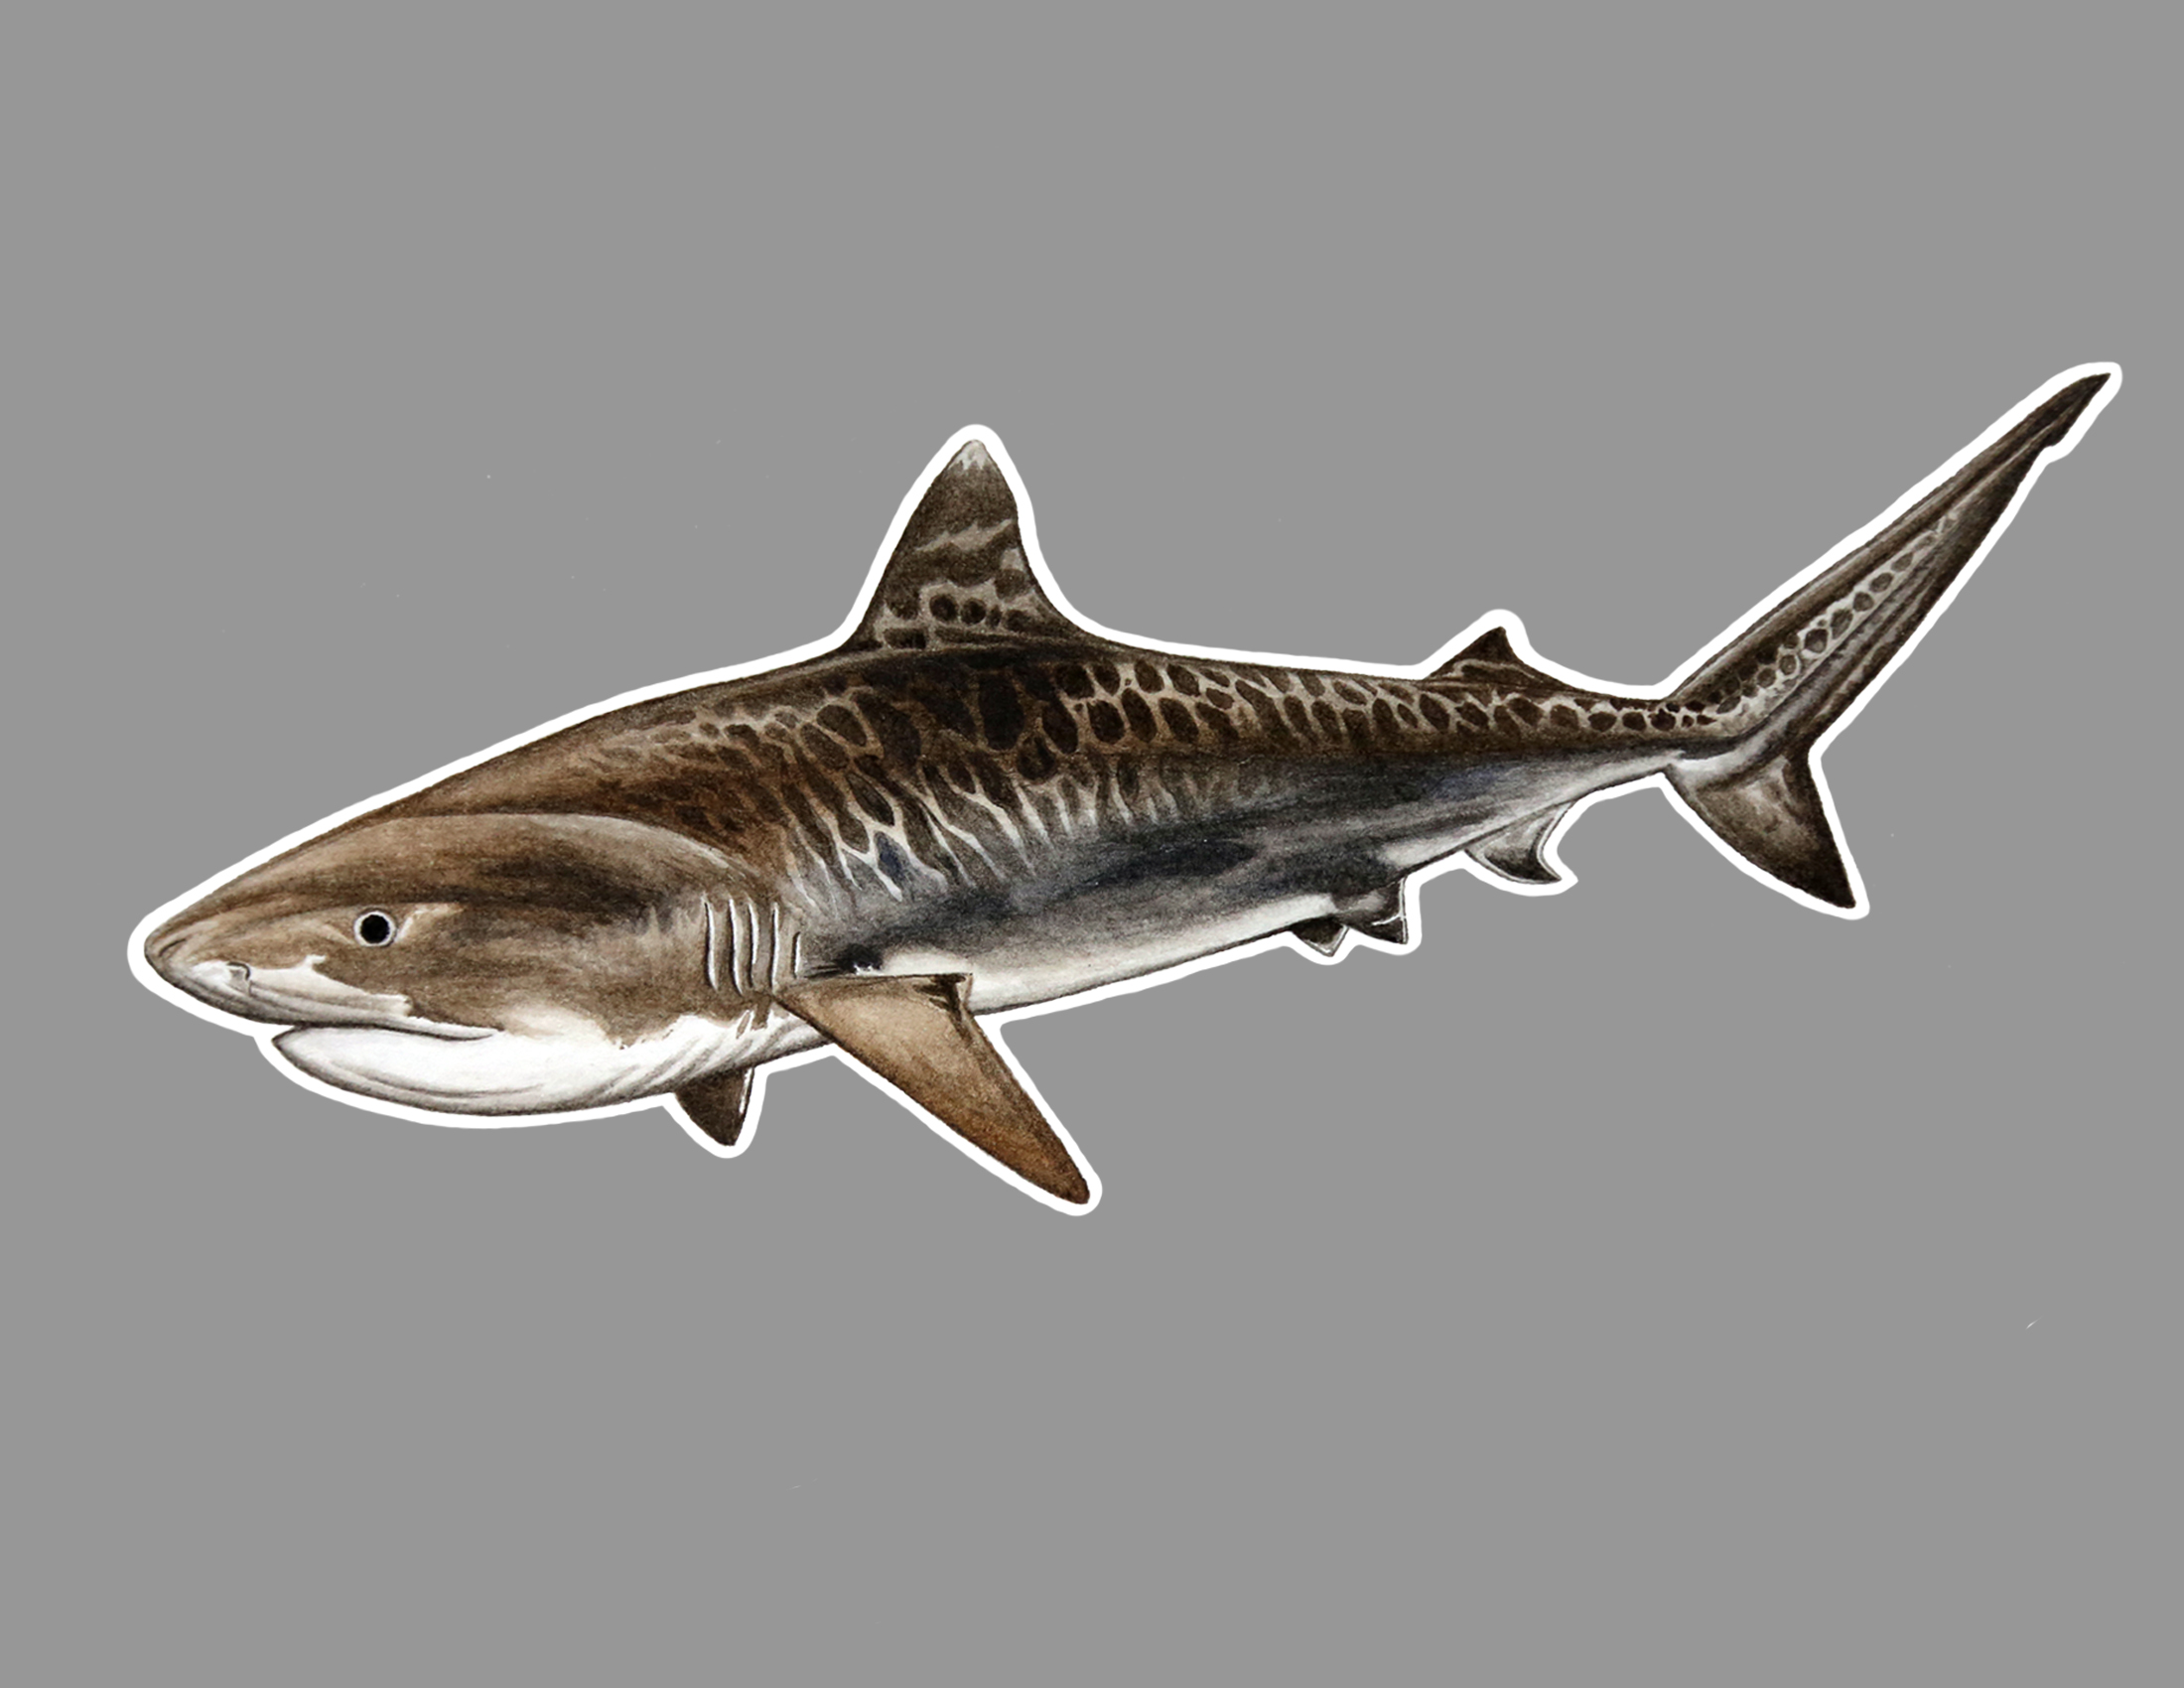 Tiger shark sticker.jpg